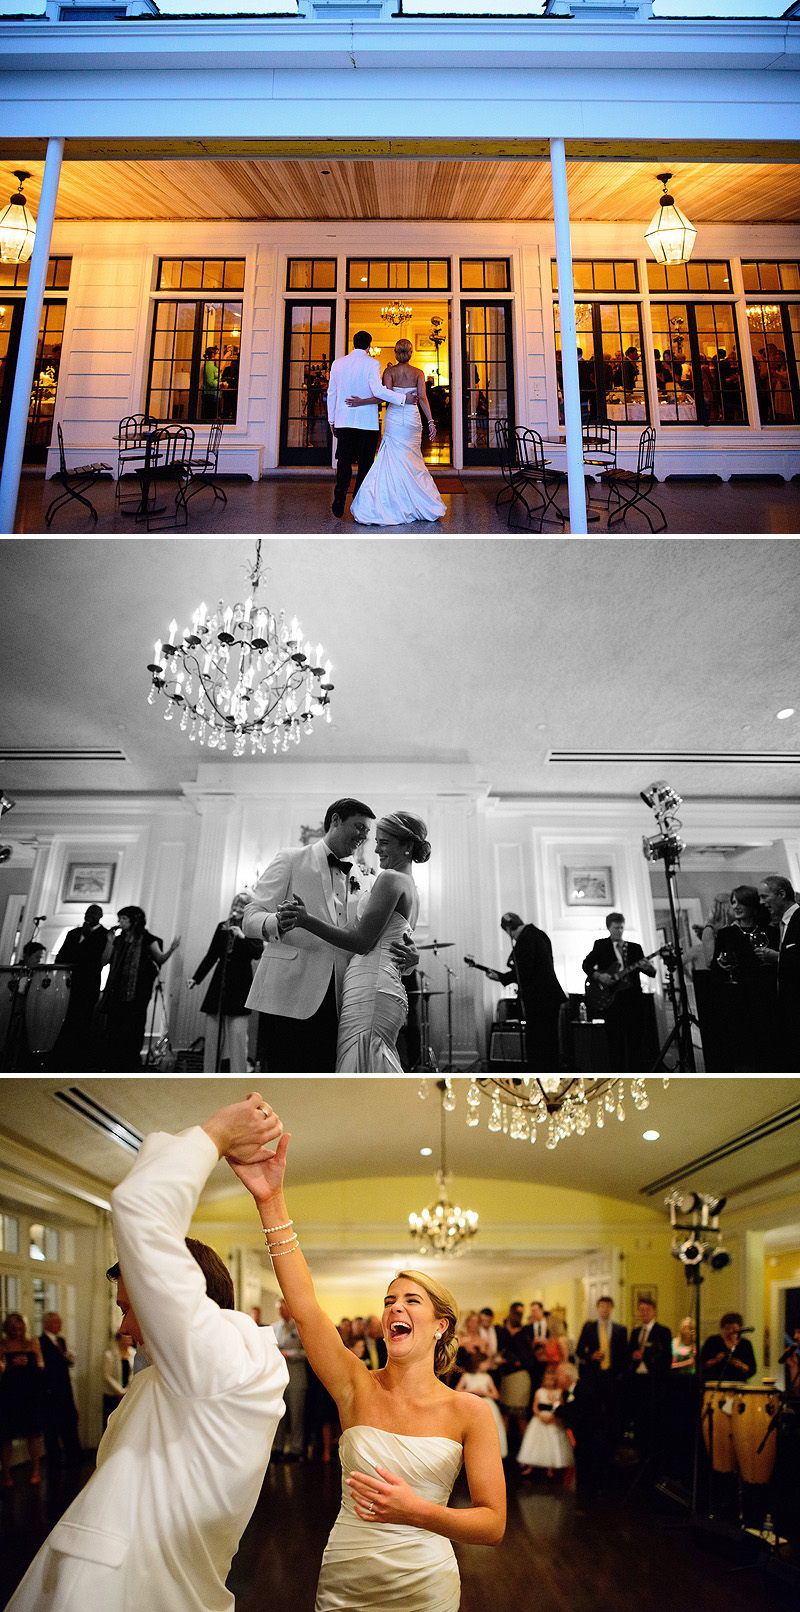 Sweet first dance at a Kansas City Country Club wedding reception.